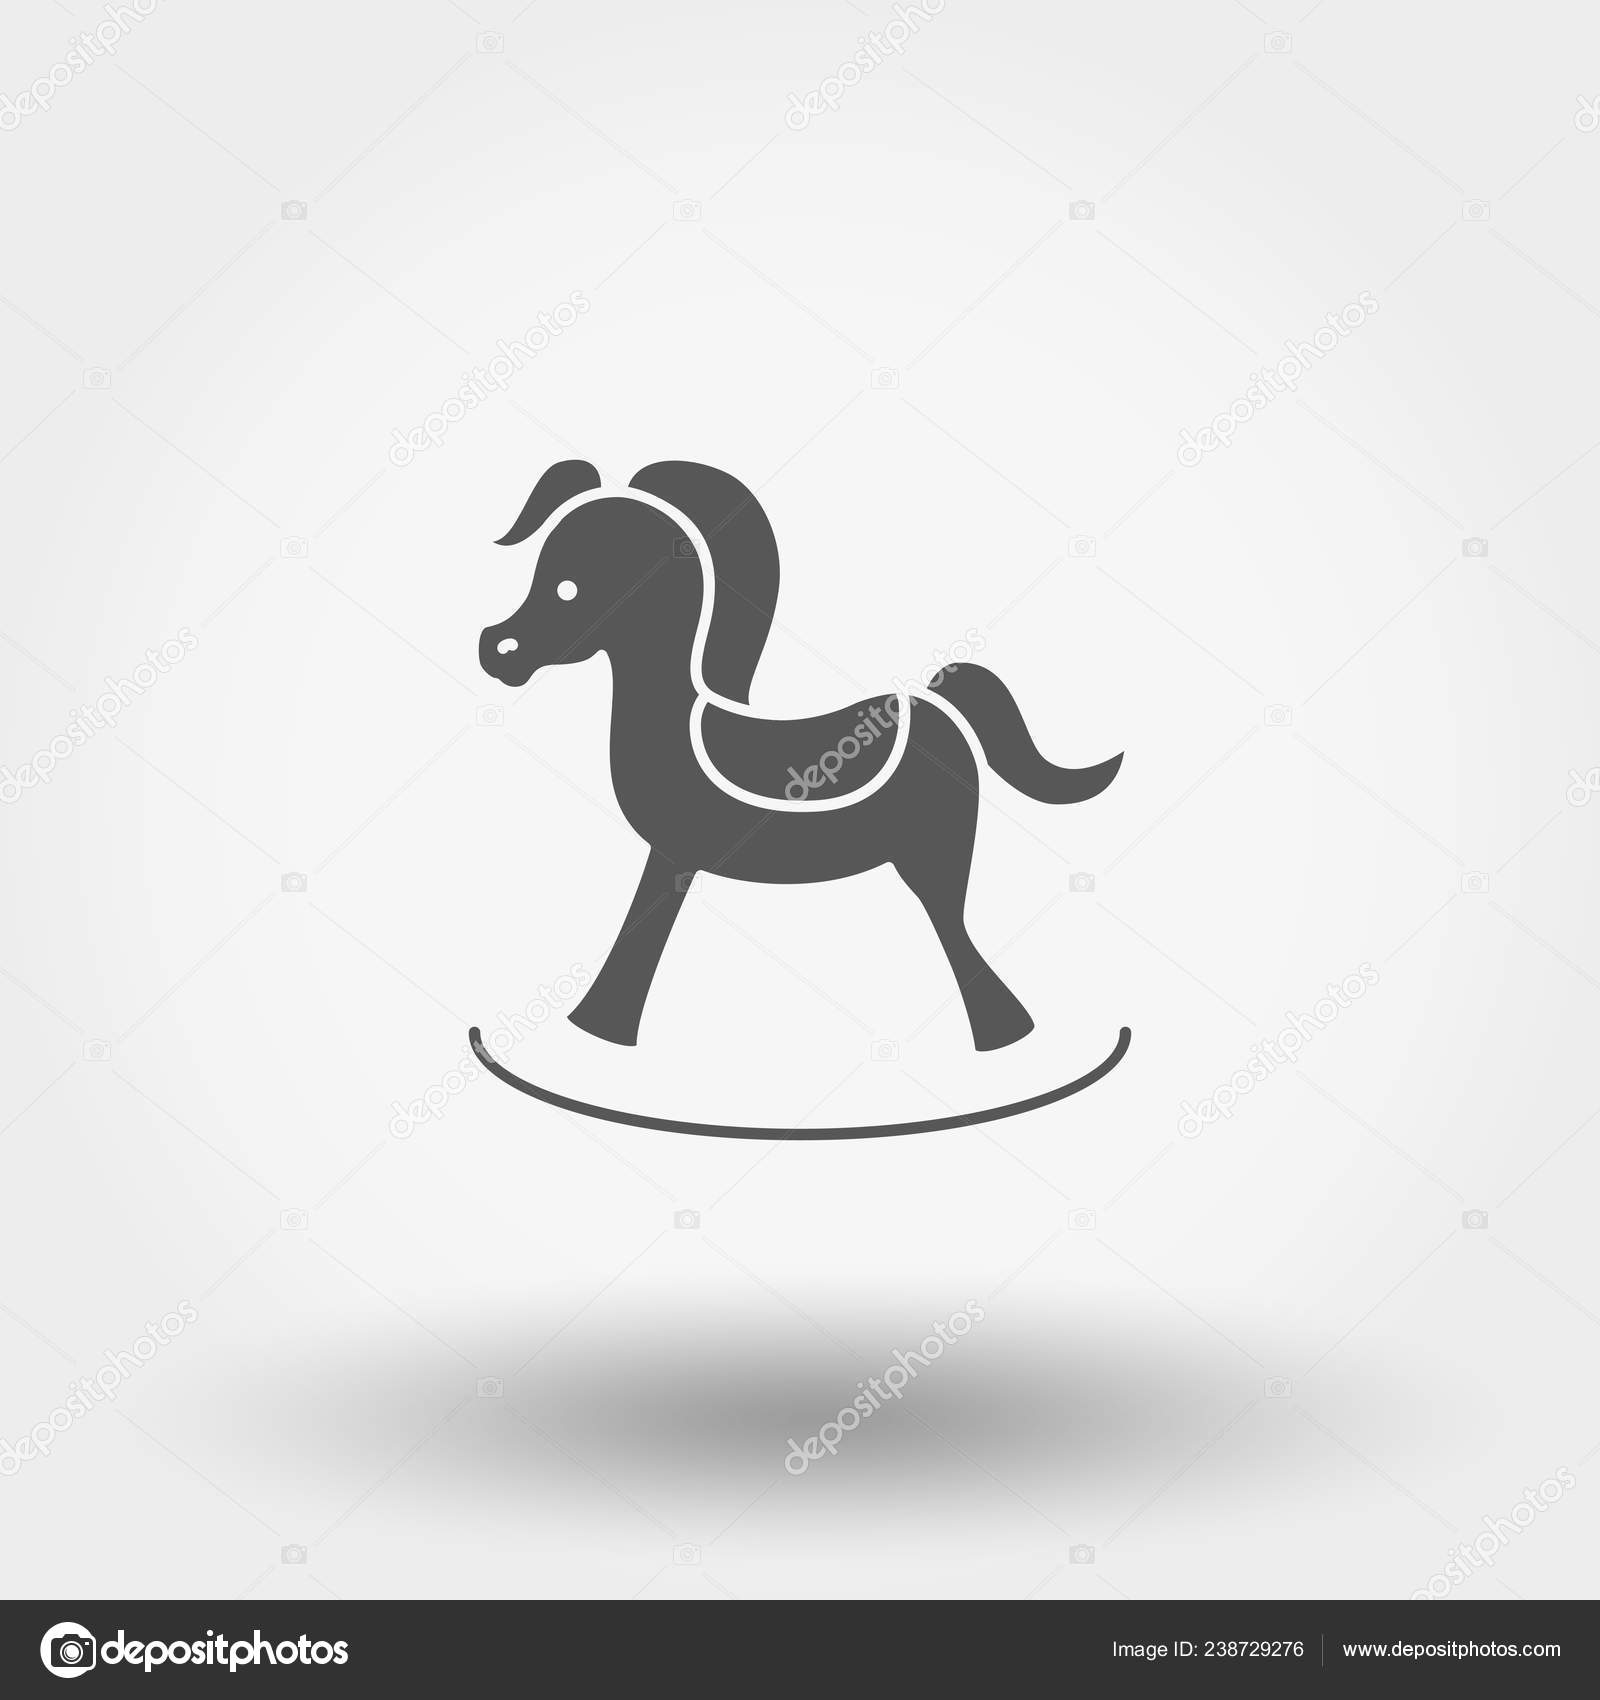 Rocking Horse Toy Silhouette Icon Web Mobile Application Vector Illustration Stock Vector C Elen88 238729276